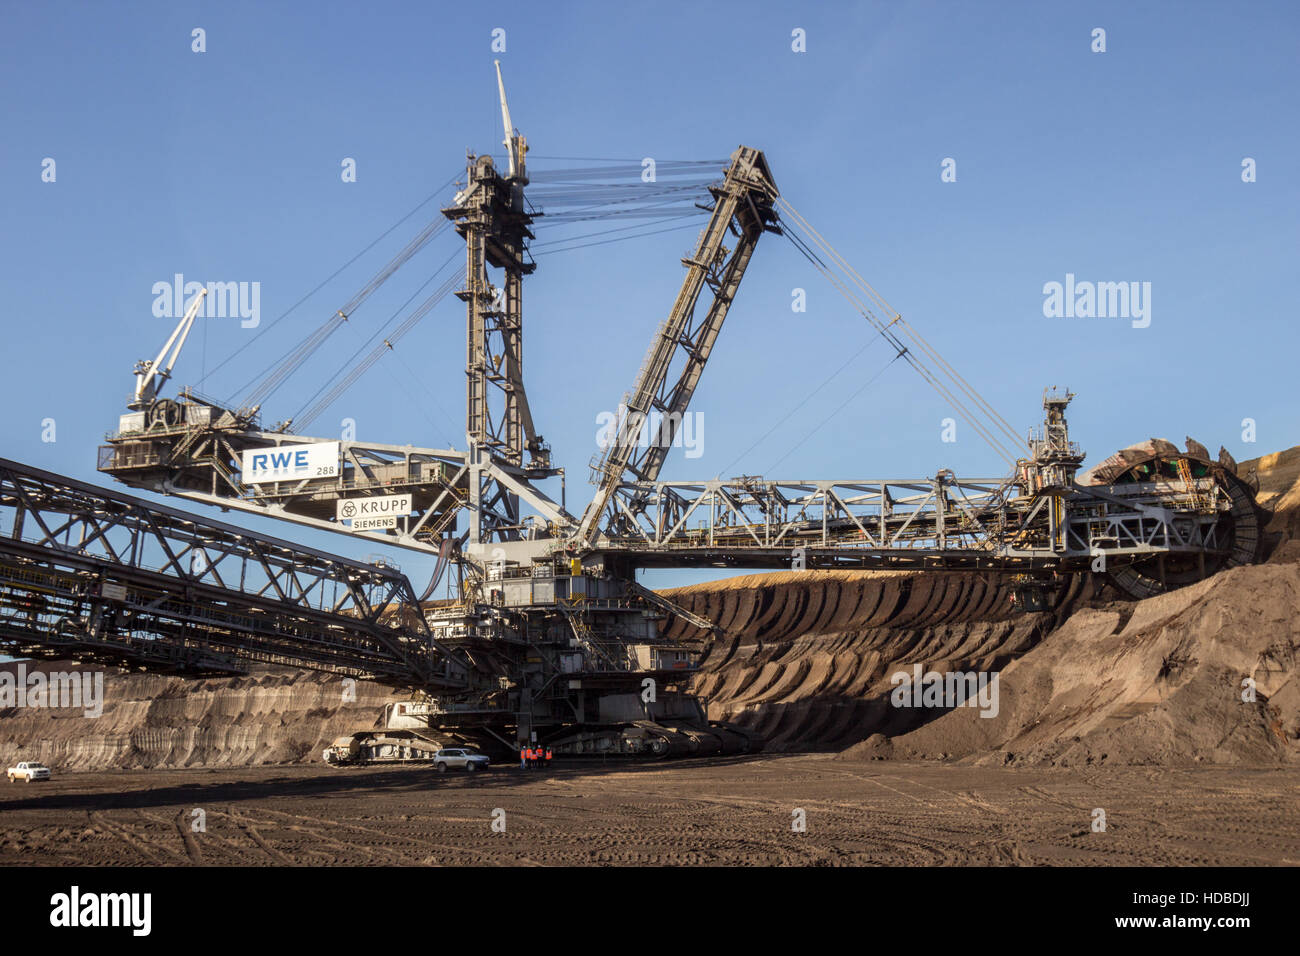 Bucket wheel excavator from RWE in the surface mine Garzweiler, Germany Stock Photo